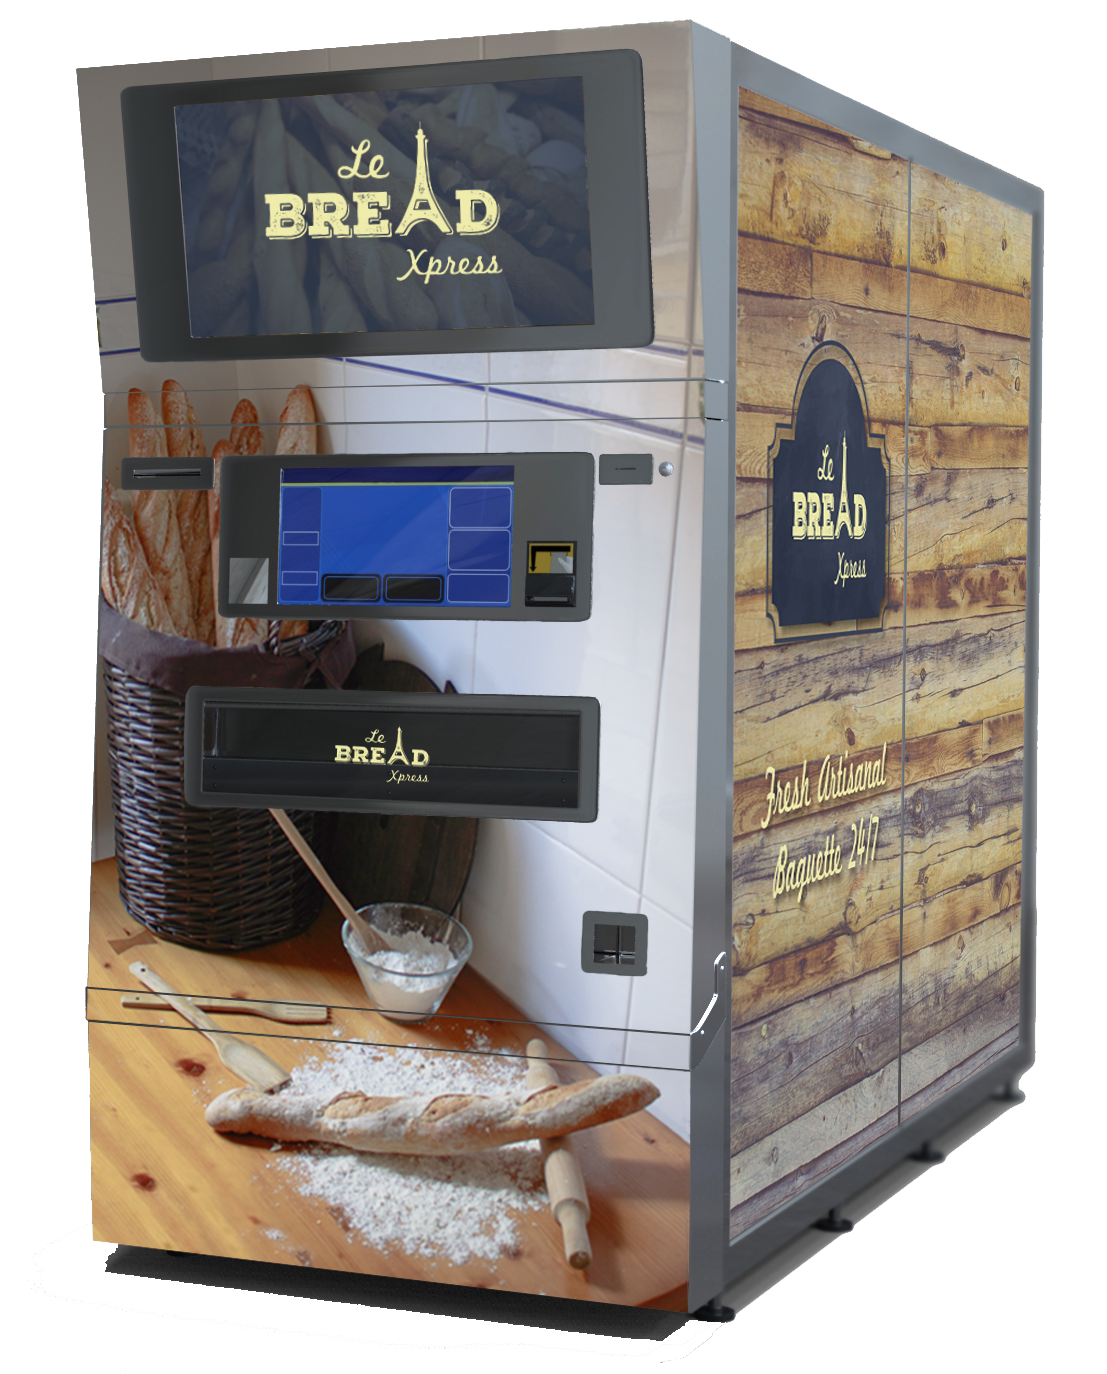 Le Bread Xpress To Present At 2018 Winter Fancy Food Show